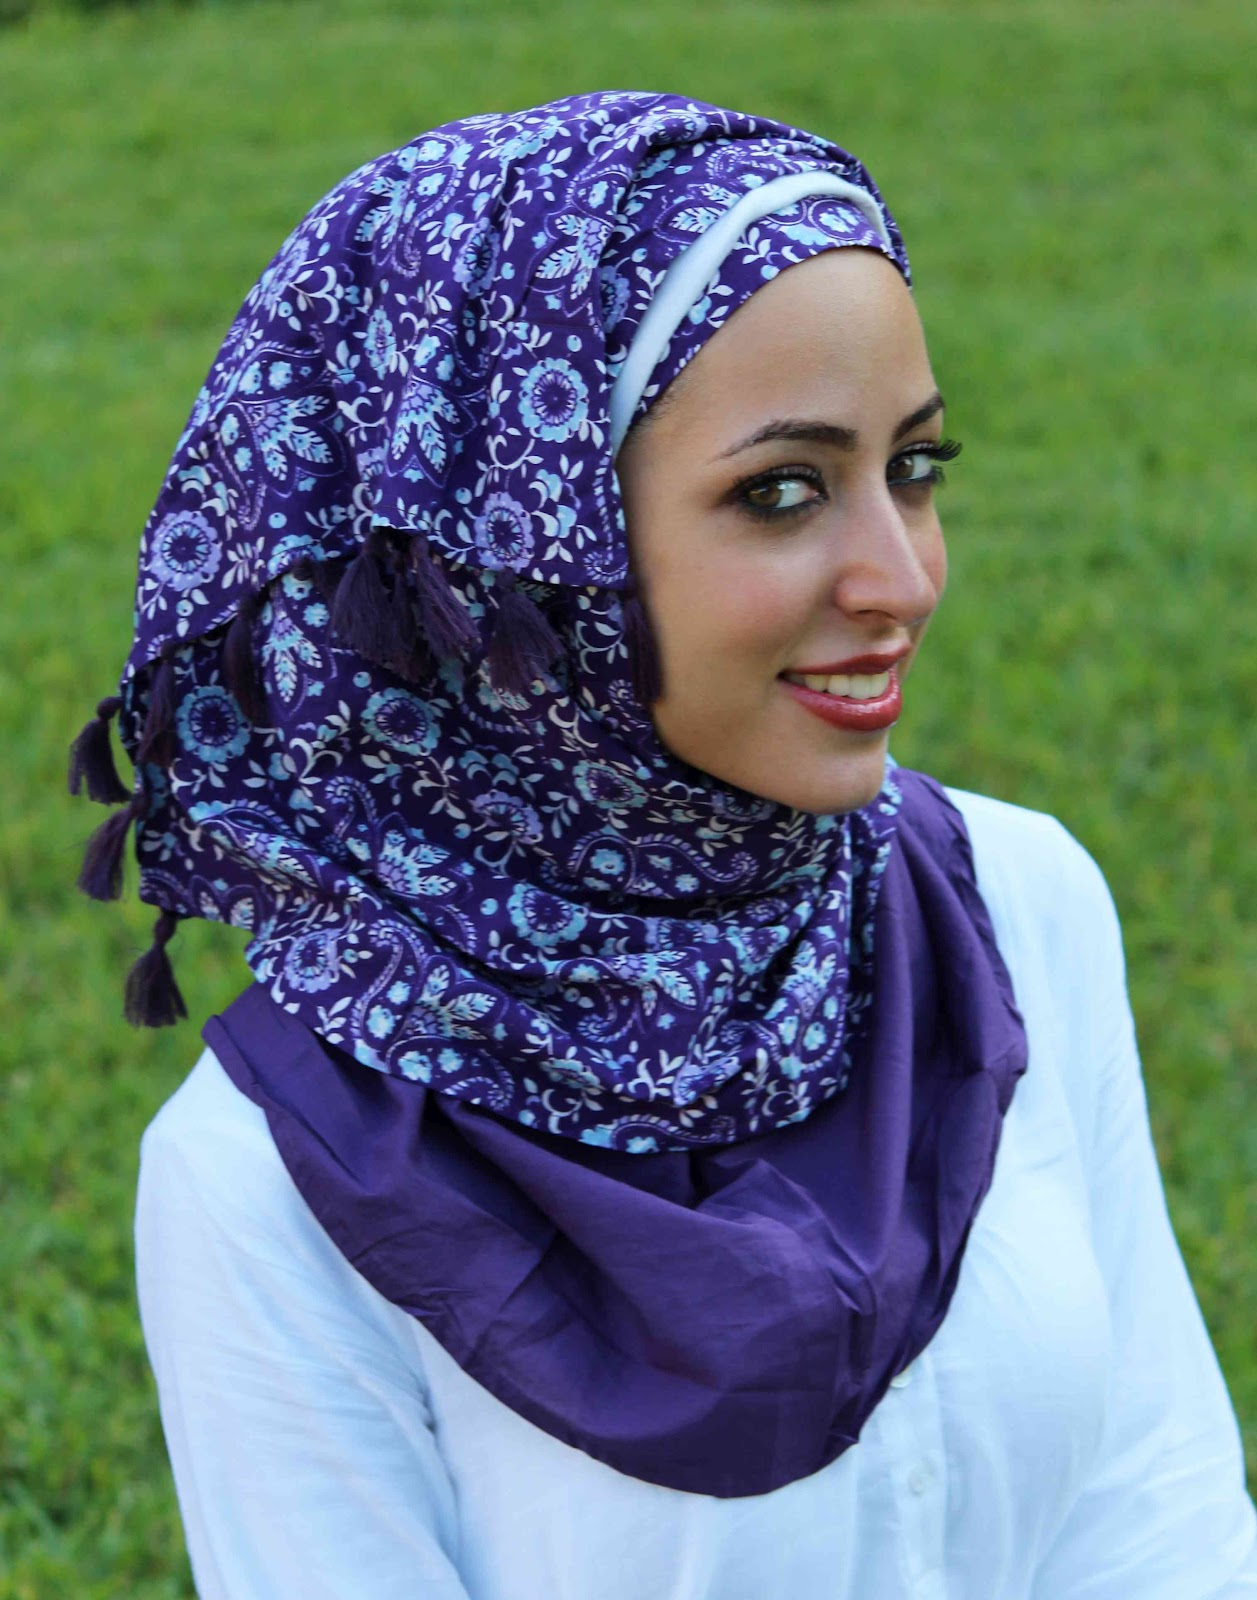 Muslims Dresses Styles Modern Hijab Fashion Trends Fashion 2013